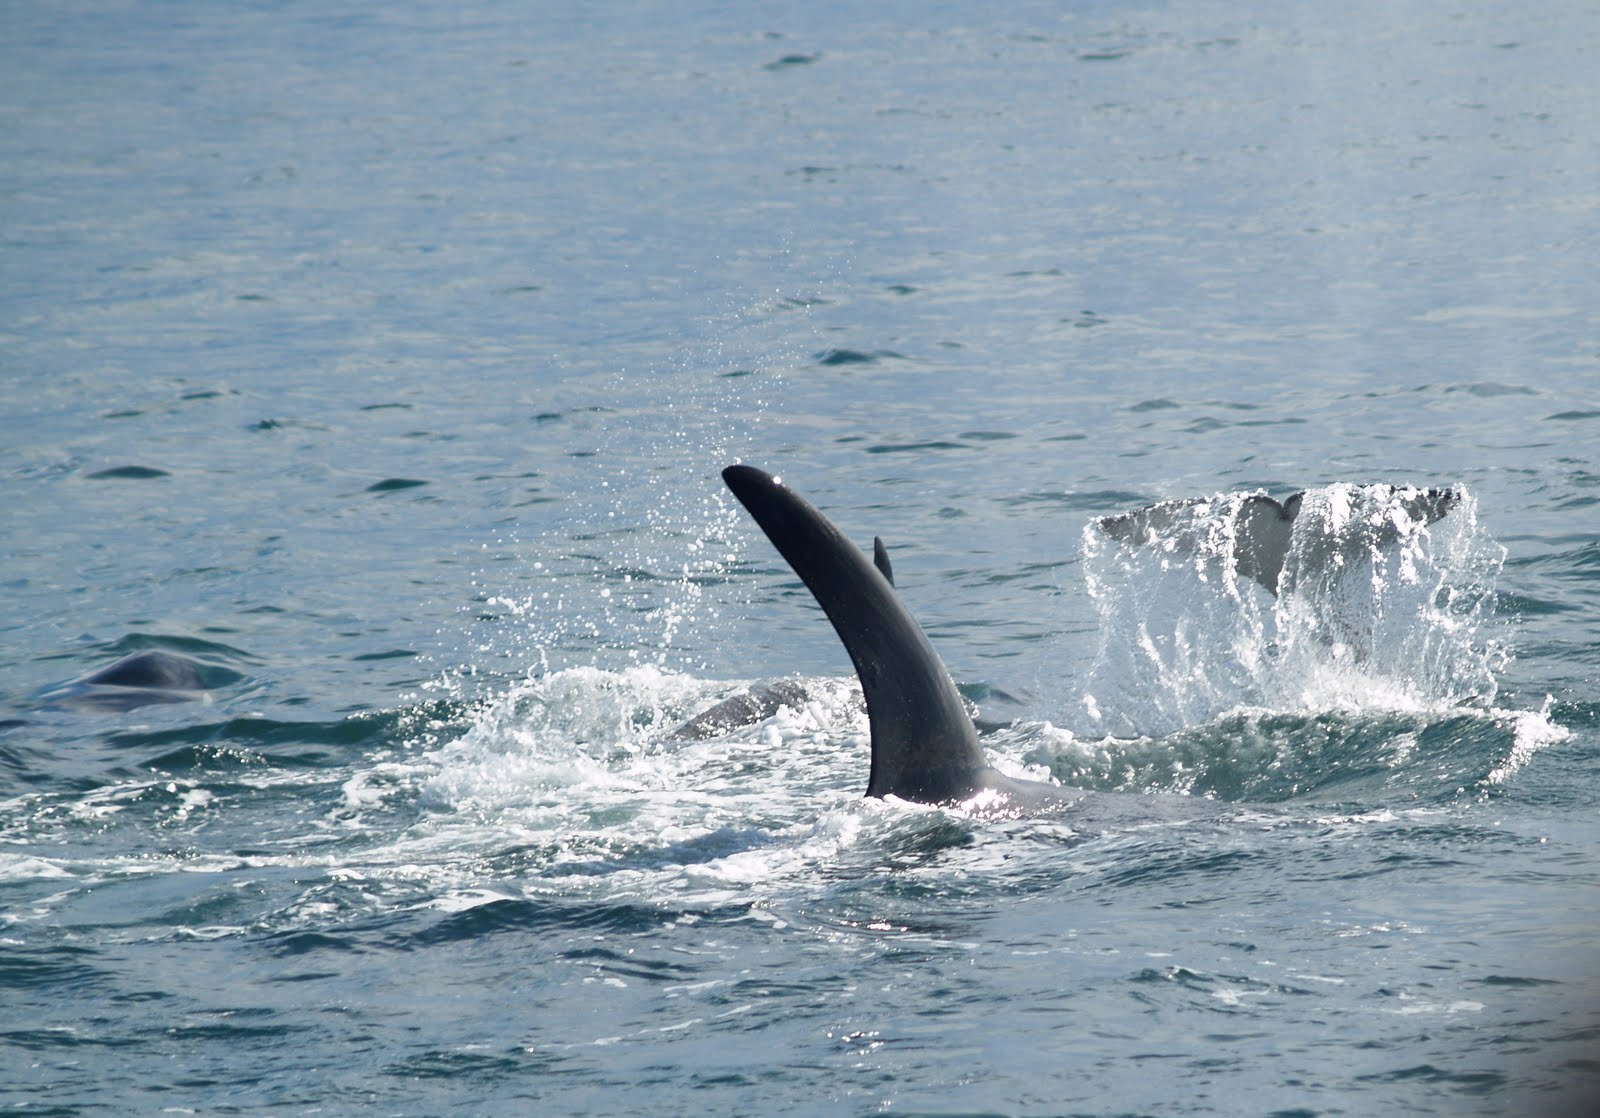 ... MARCH 31, 2010 Fifteen Transient Killer Whales Get Together To Hunt